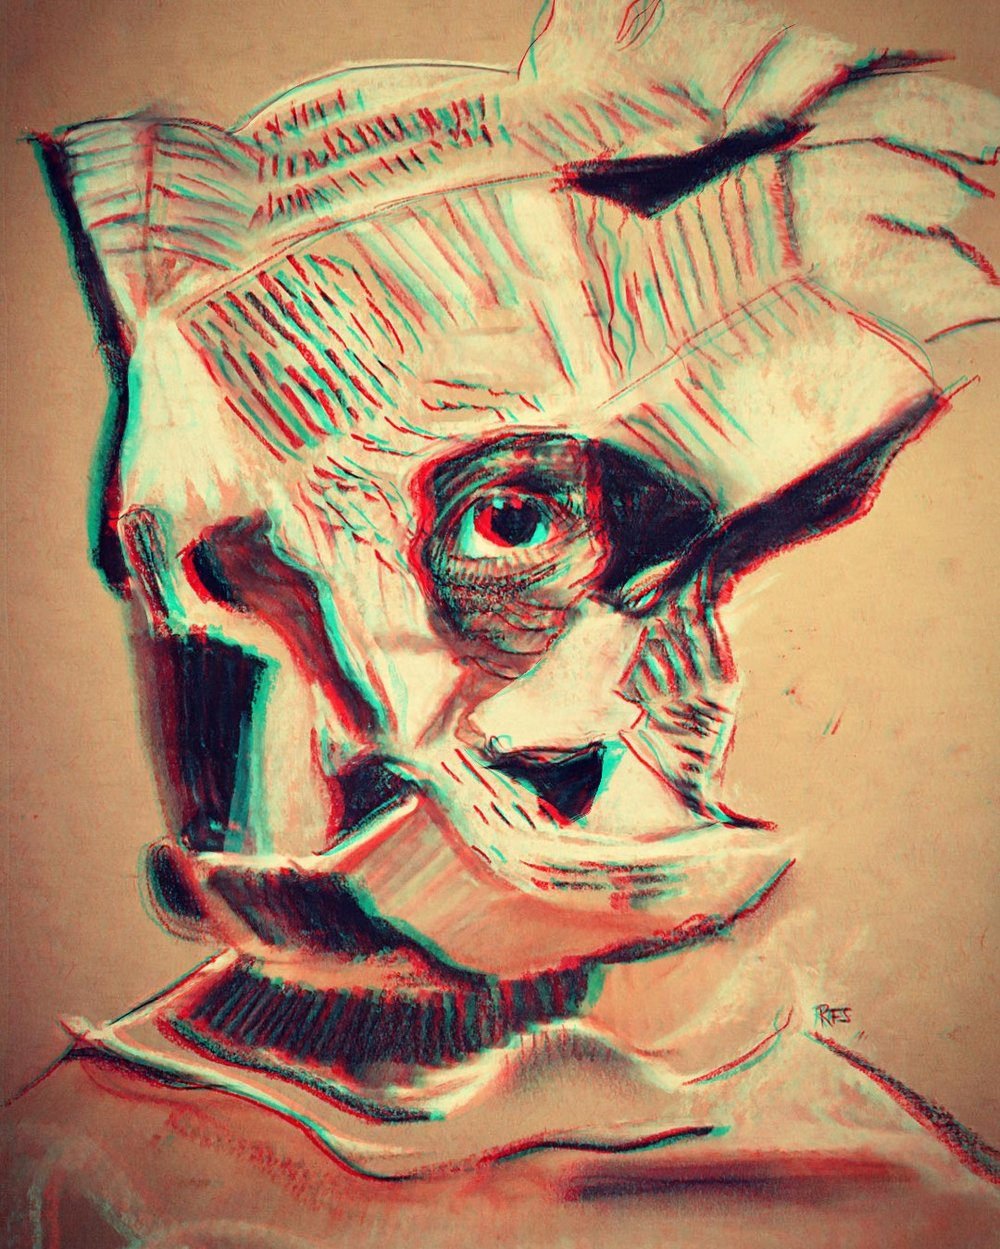 person2-anaglyph.jpg